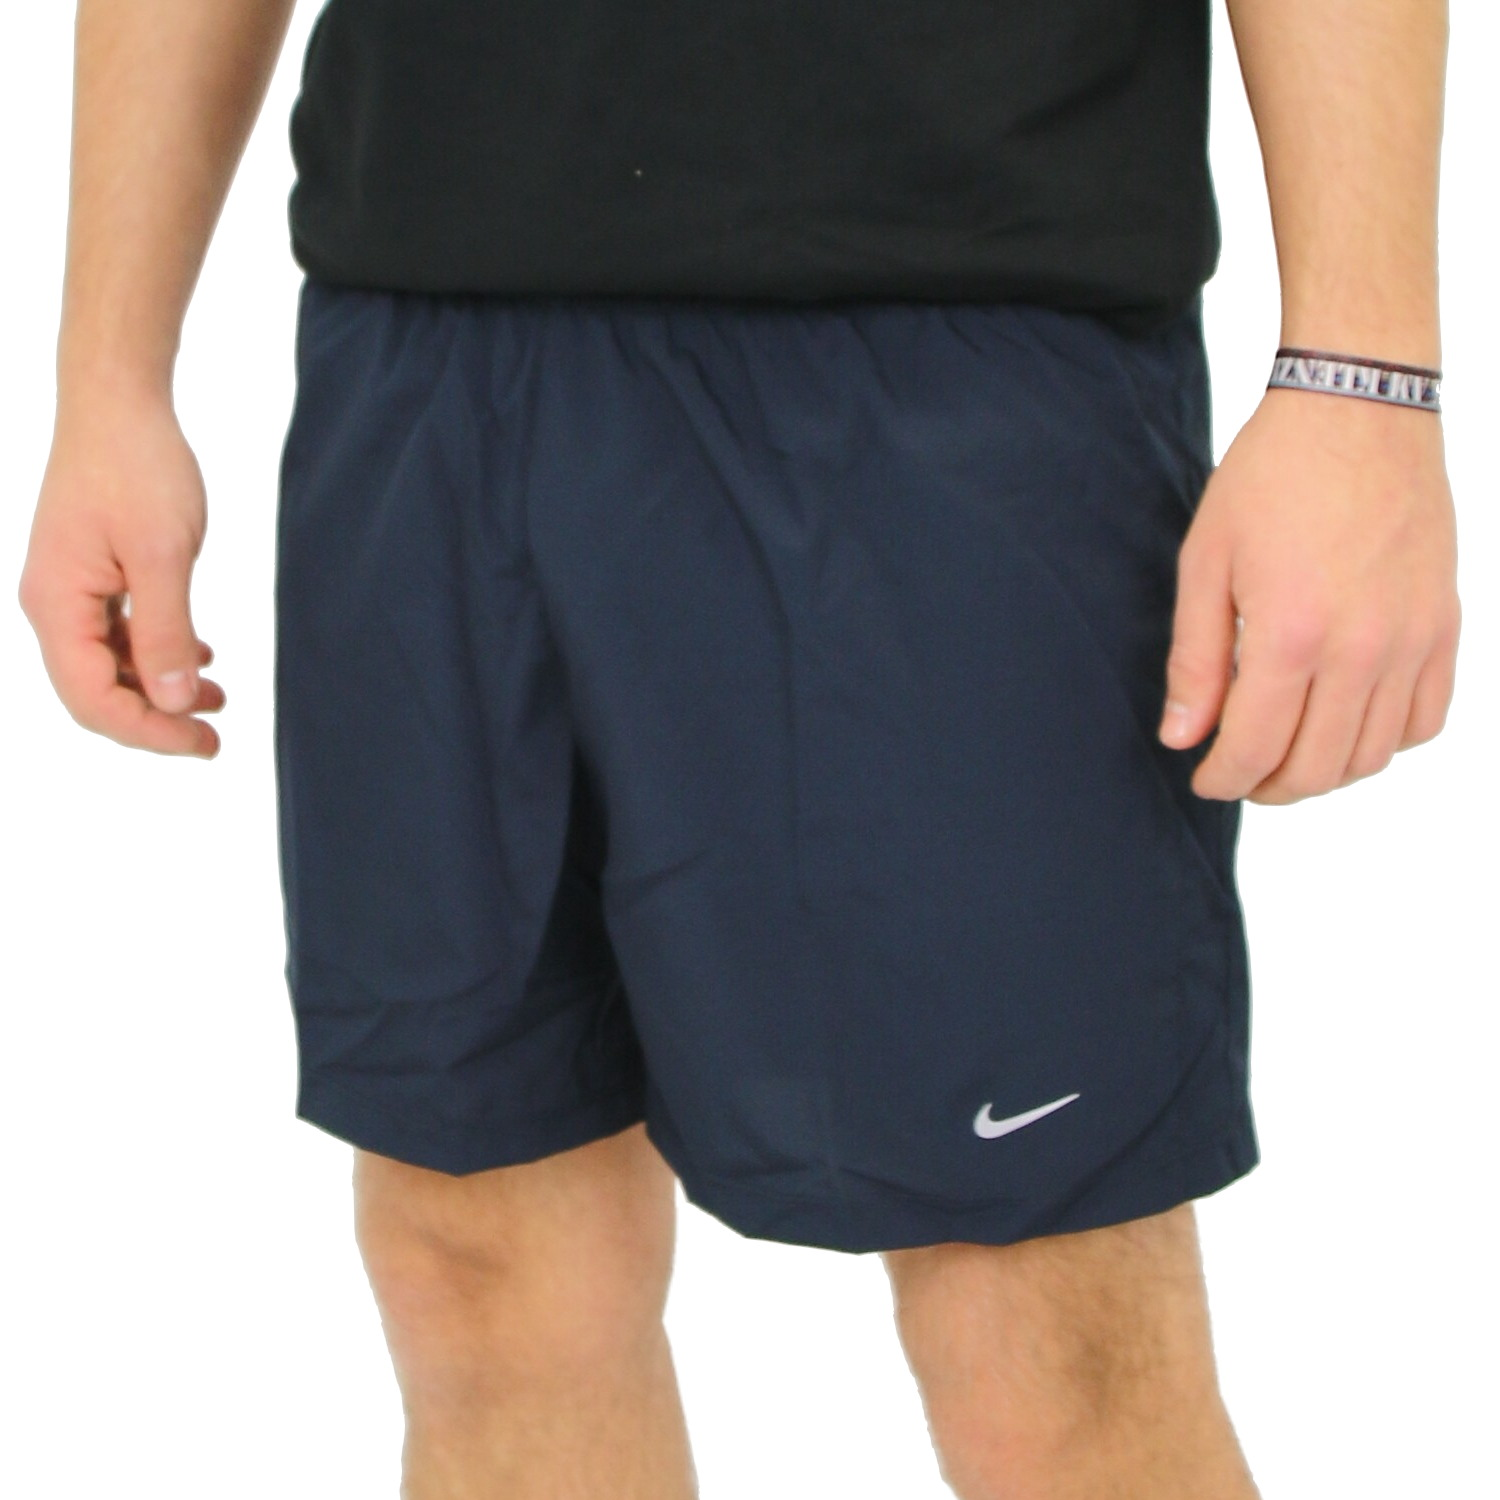 nike woven 4 running shorts hose laufhose sporthose kurz. Black Bedroom Furniture Sets. Home Design Ideas